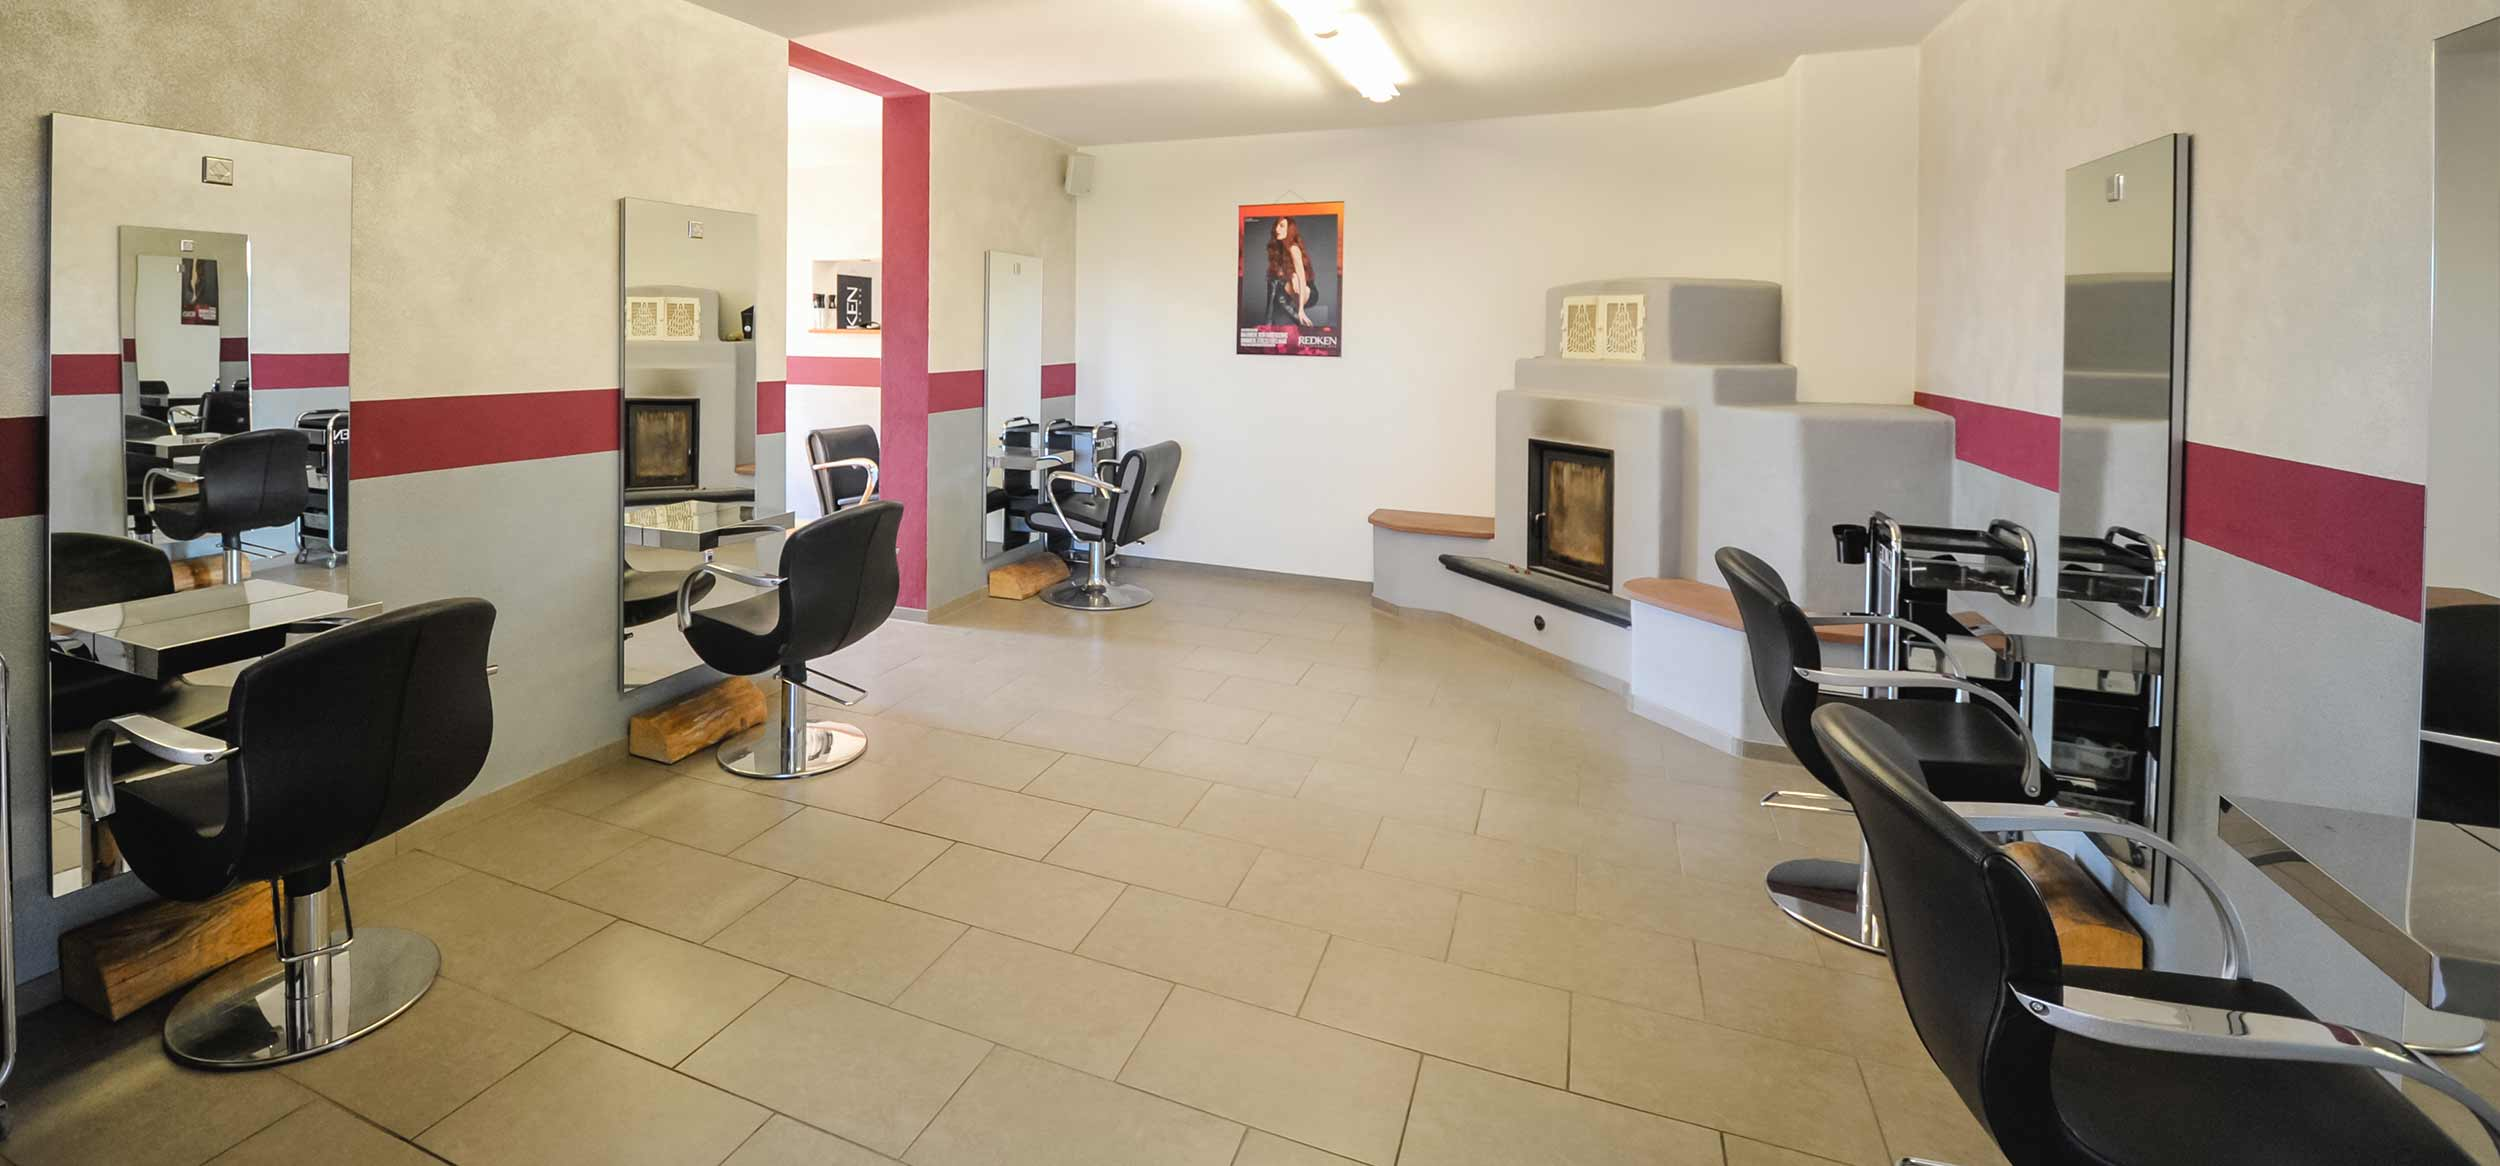 Salon Hesslar – Intercoiffure Bonetti